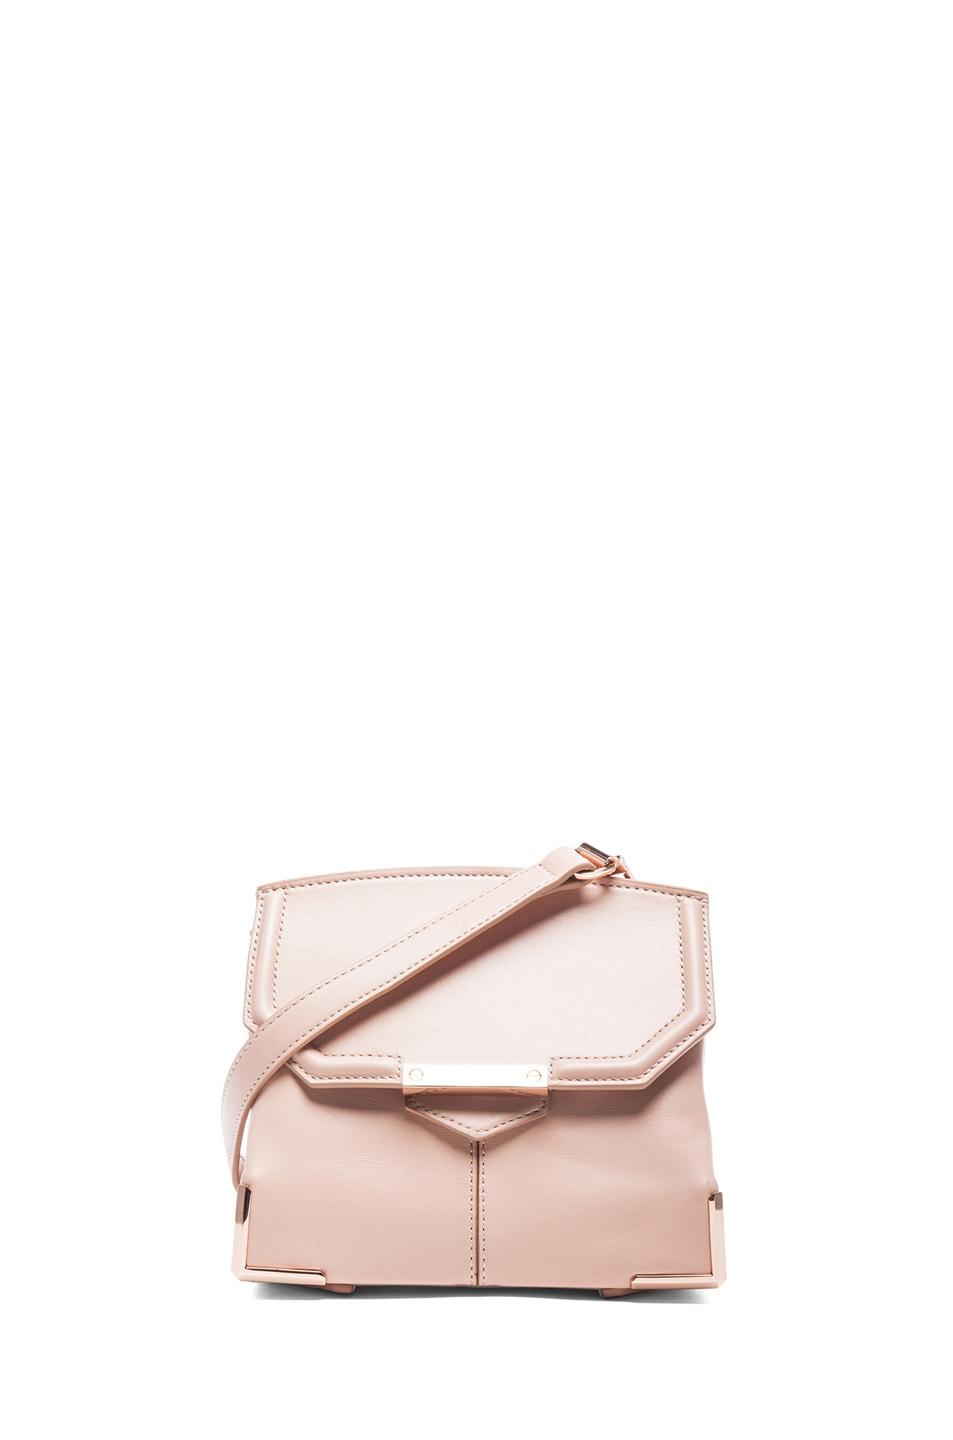 Image 1 of Alexander Wang Marion Handbag in Rose